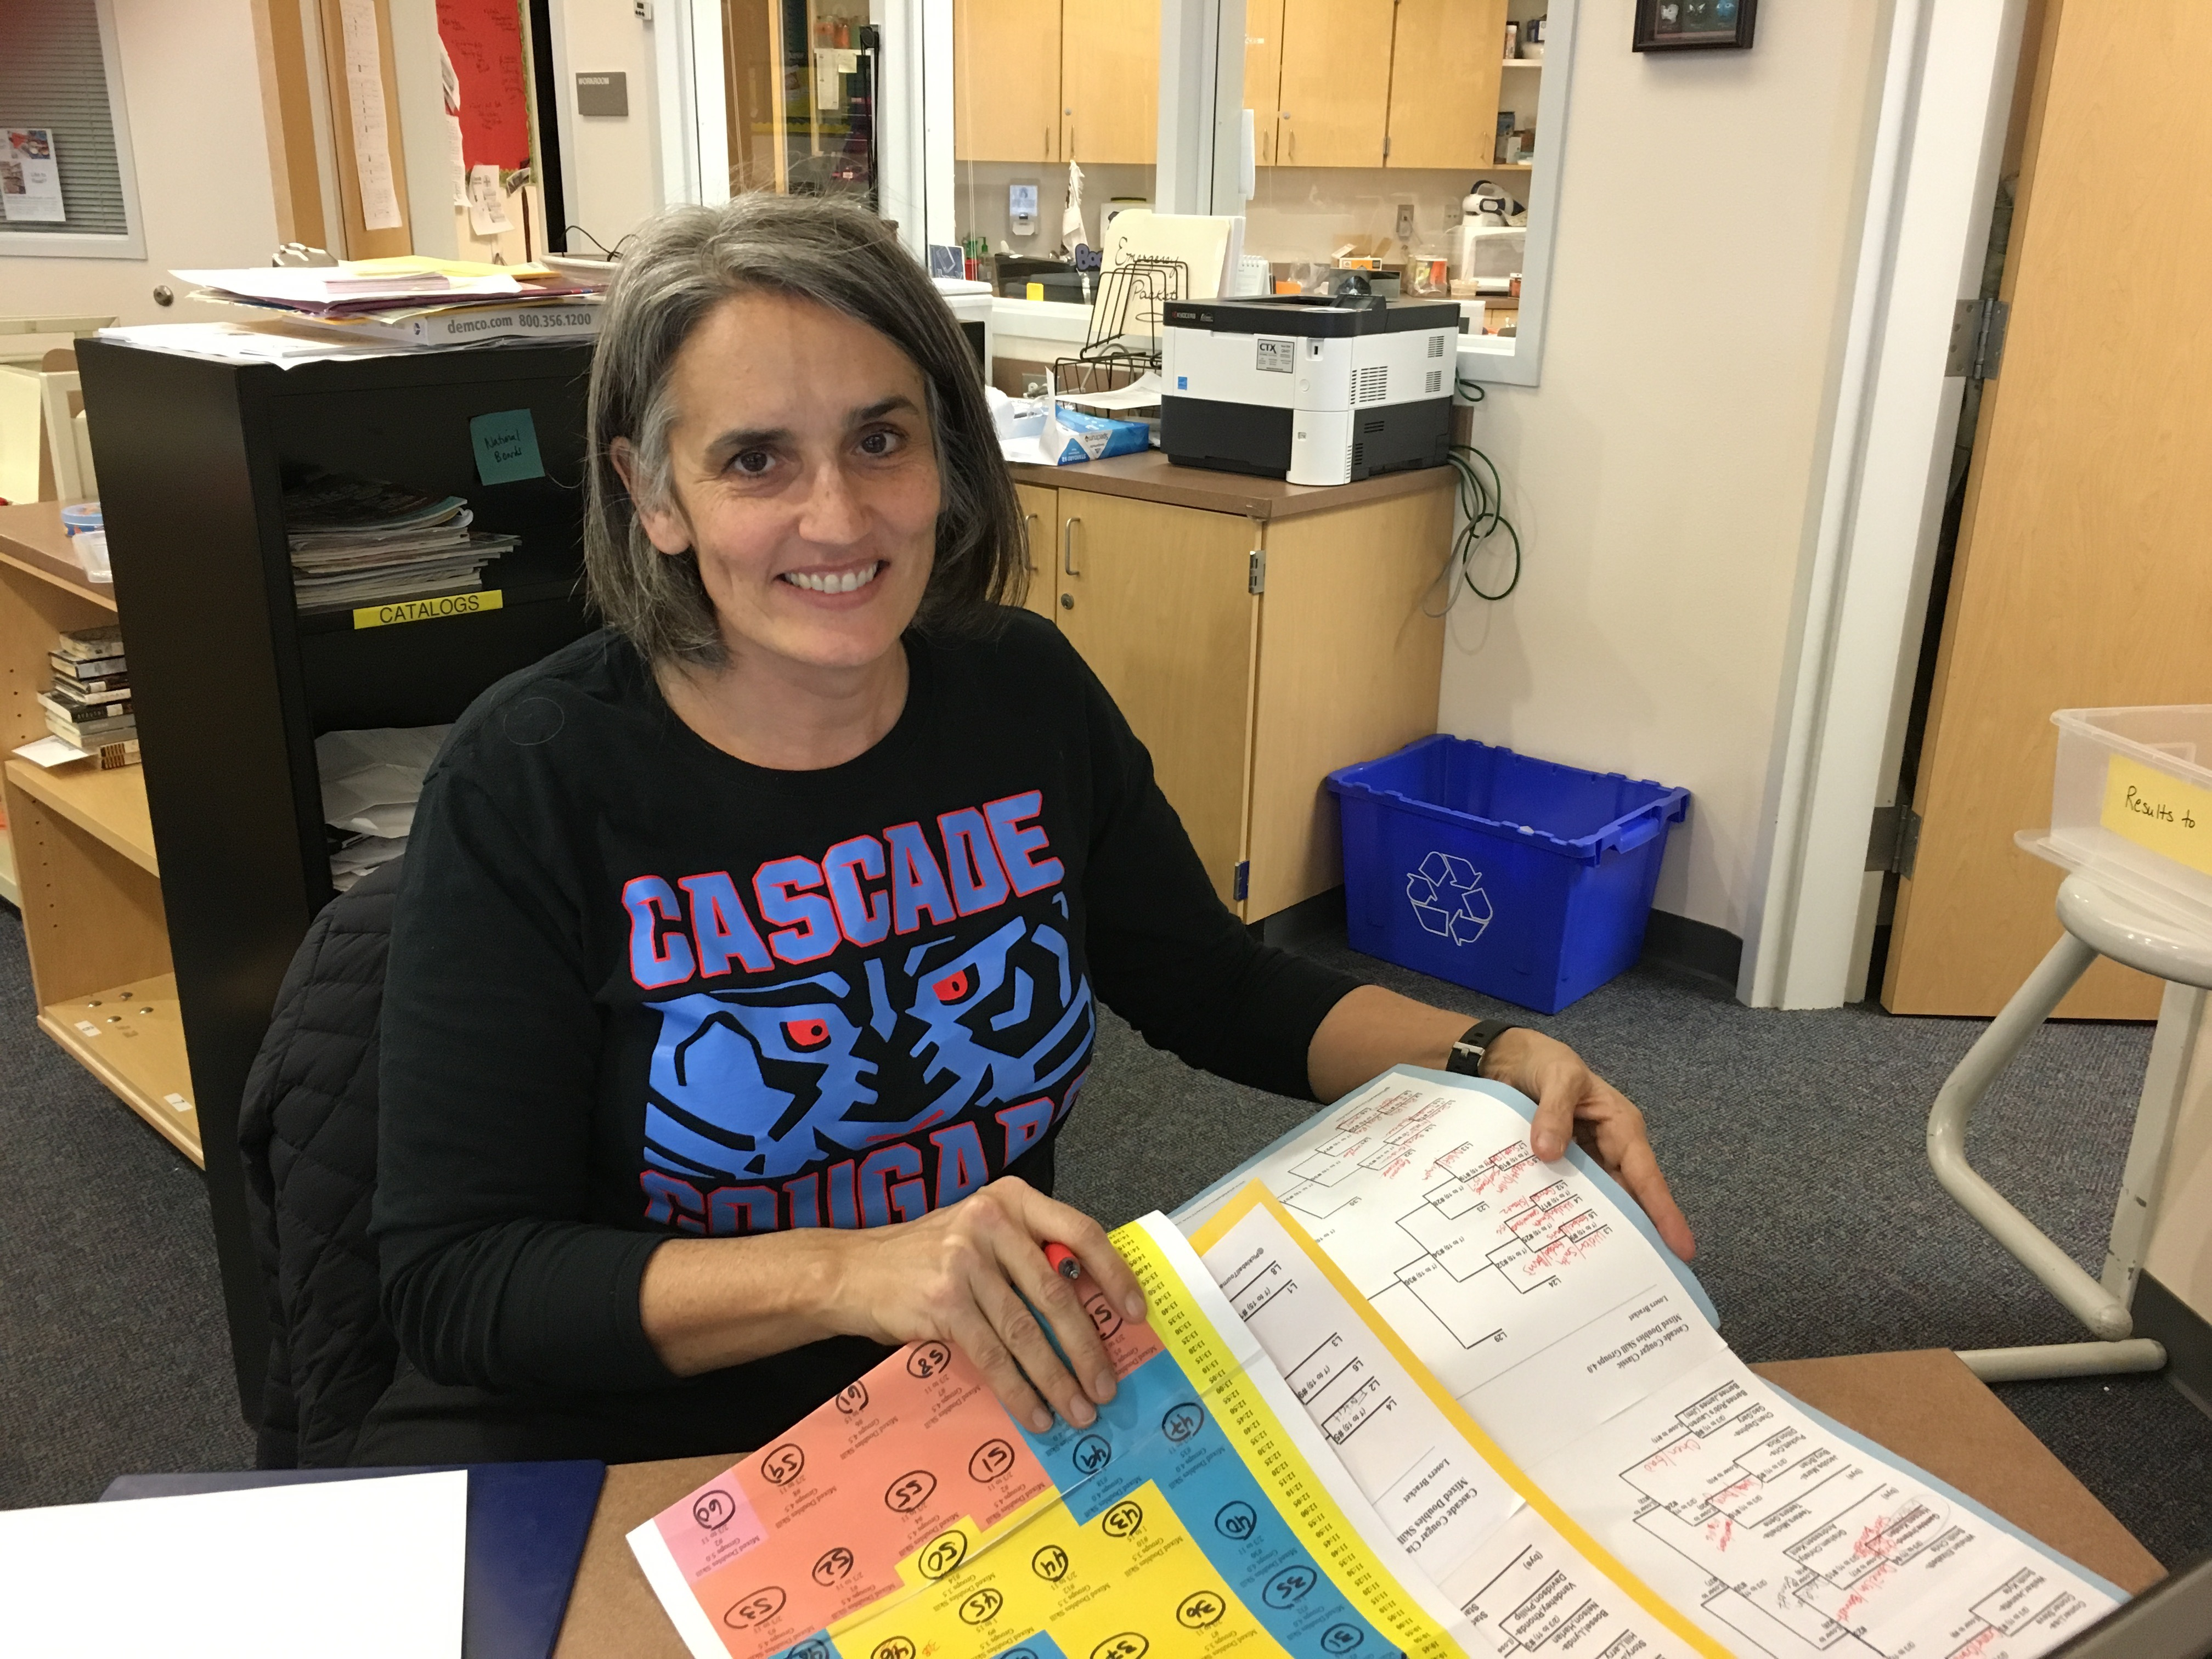 Caption: Michelle Annet - avid pickleball player and librarian at Cascade Middle School